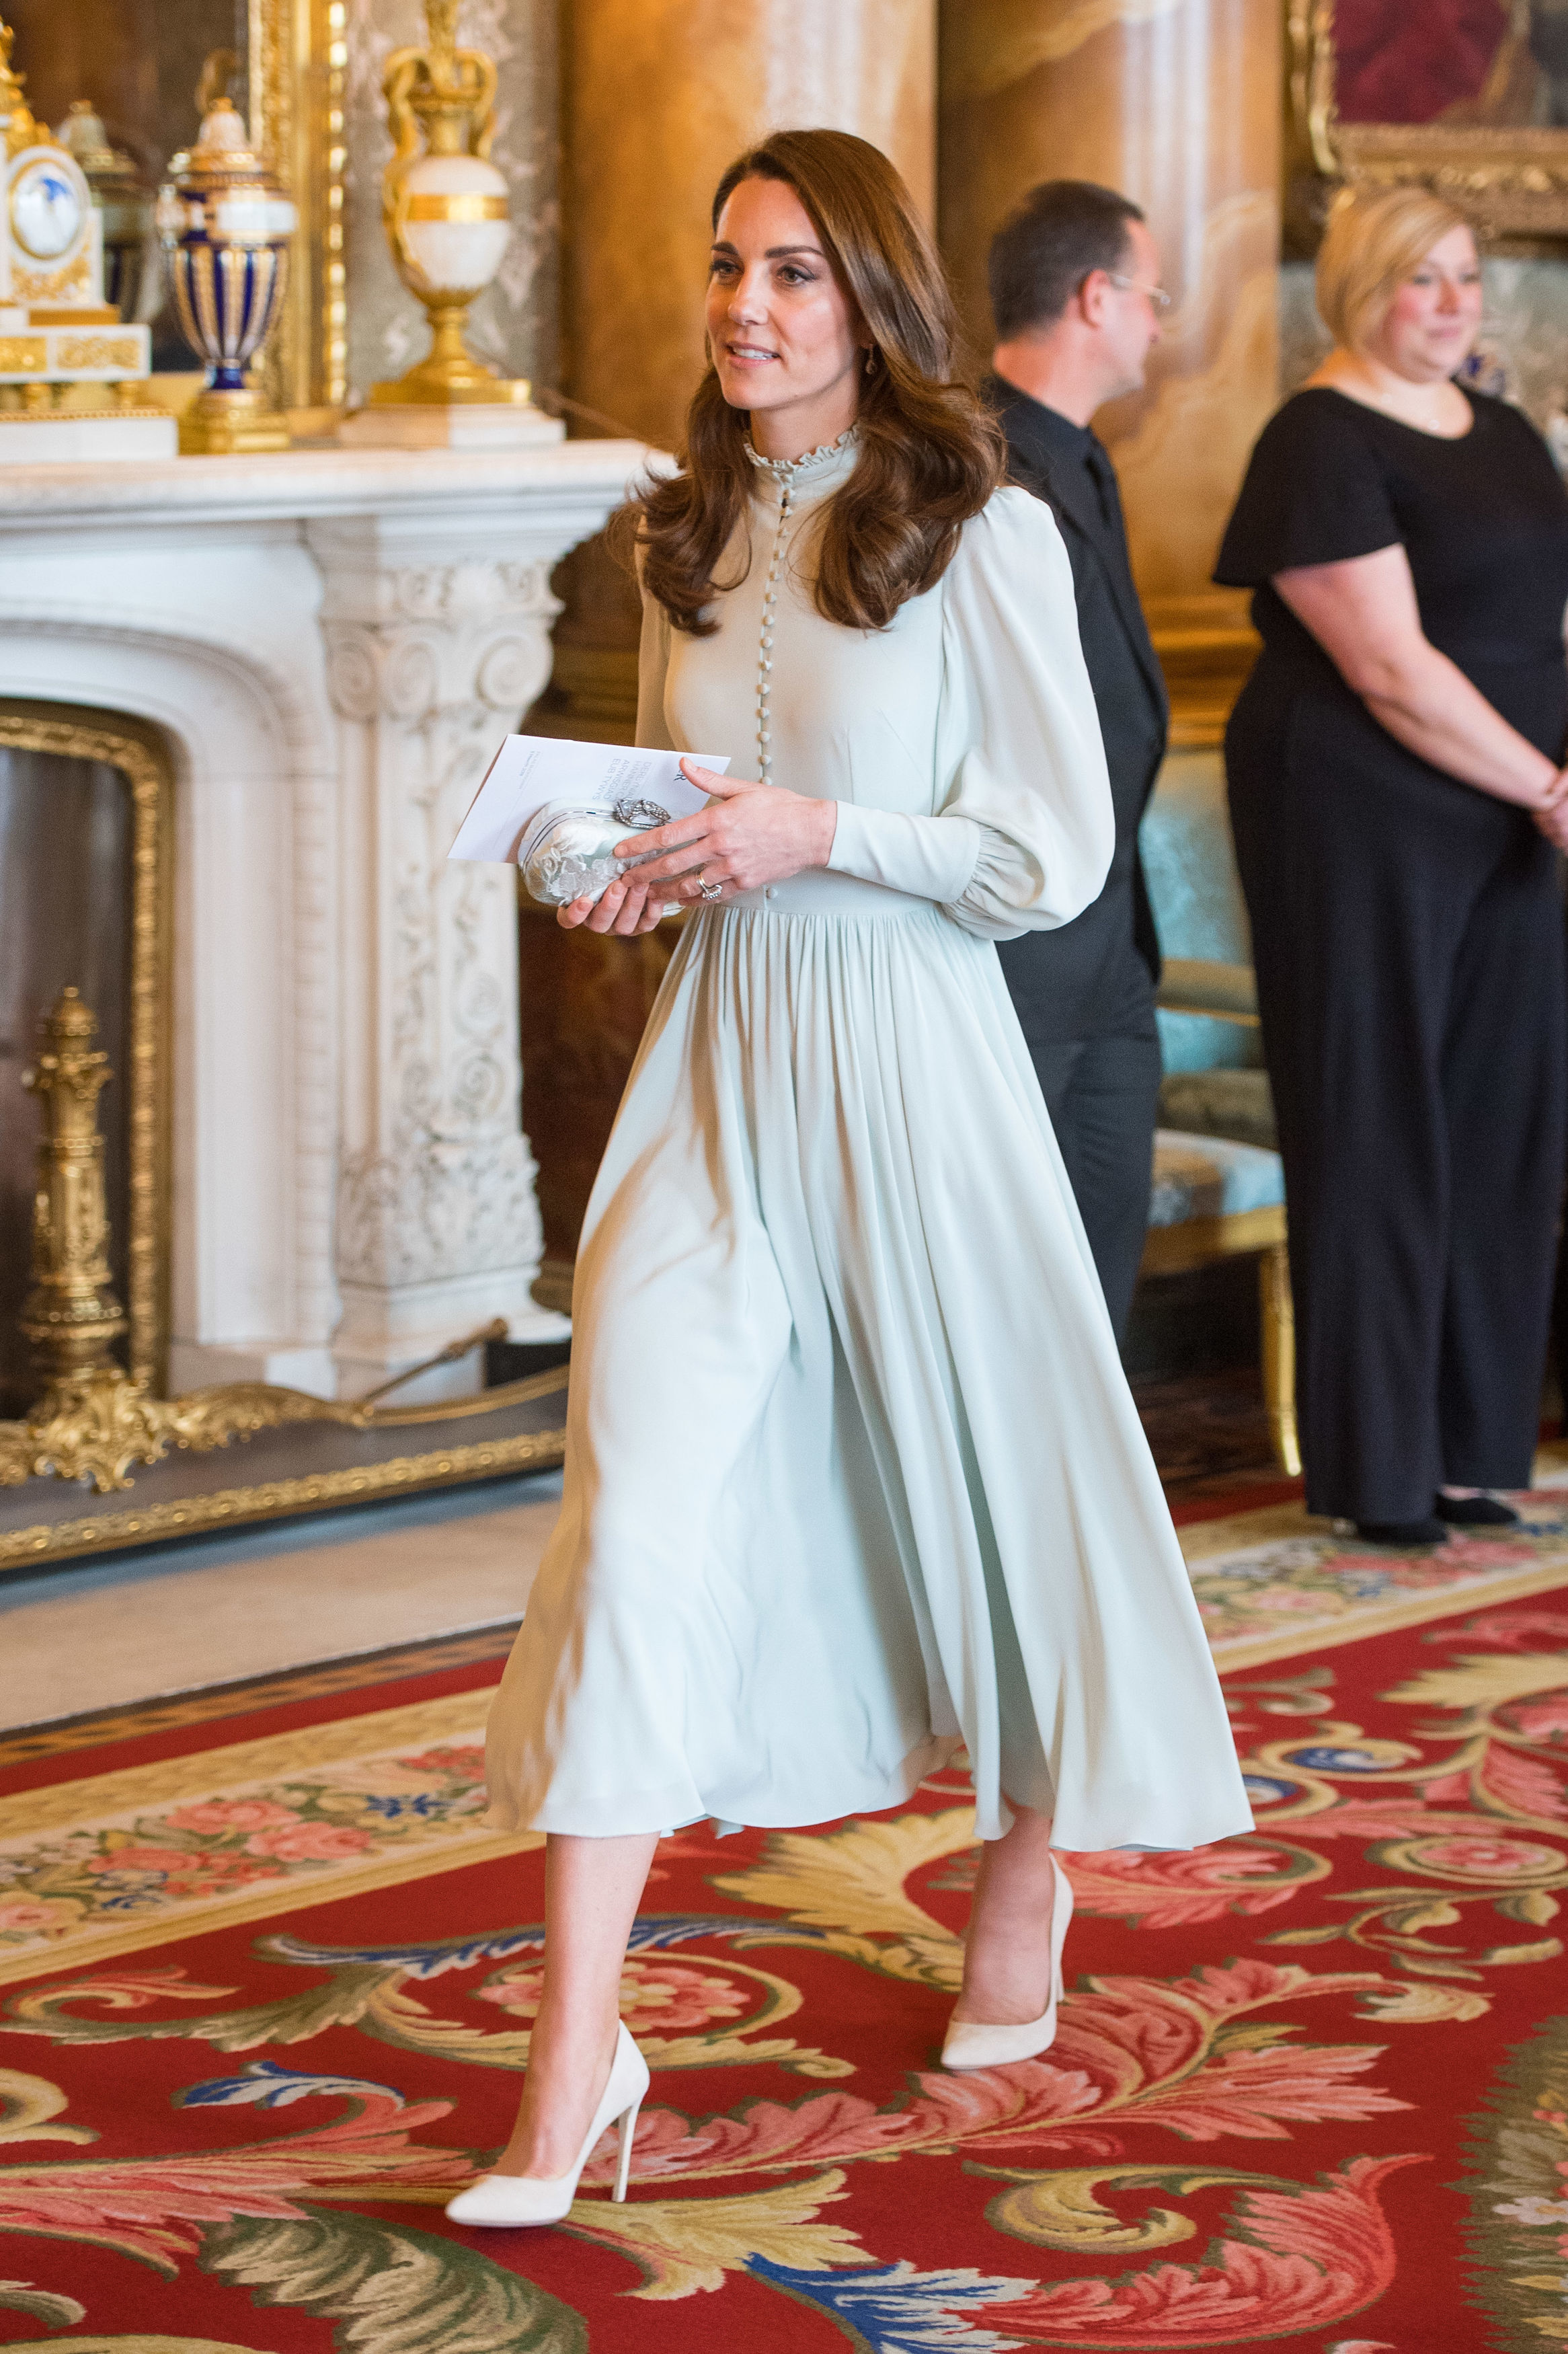 The Duchess of Cambridge attends a reception at Buckingham Palace